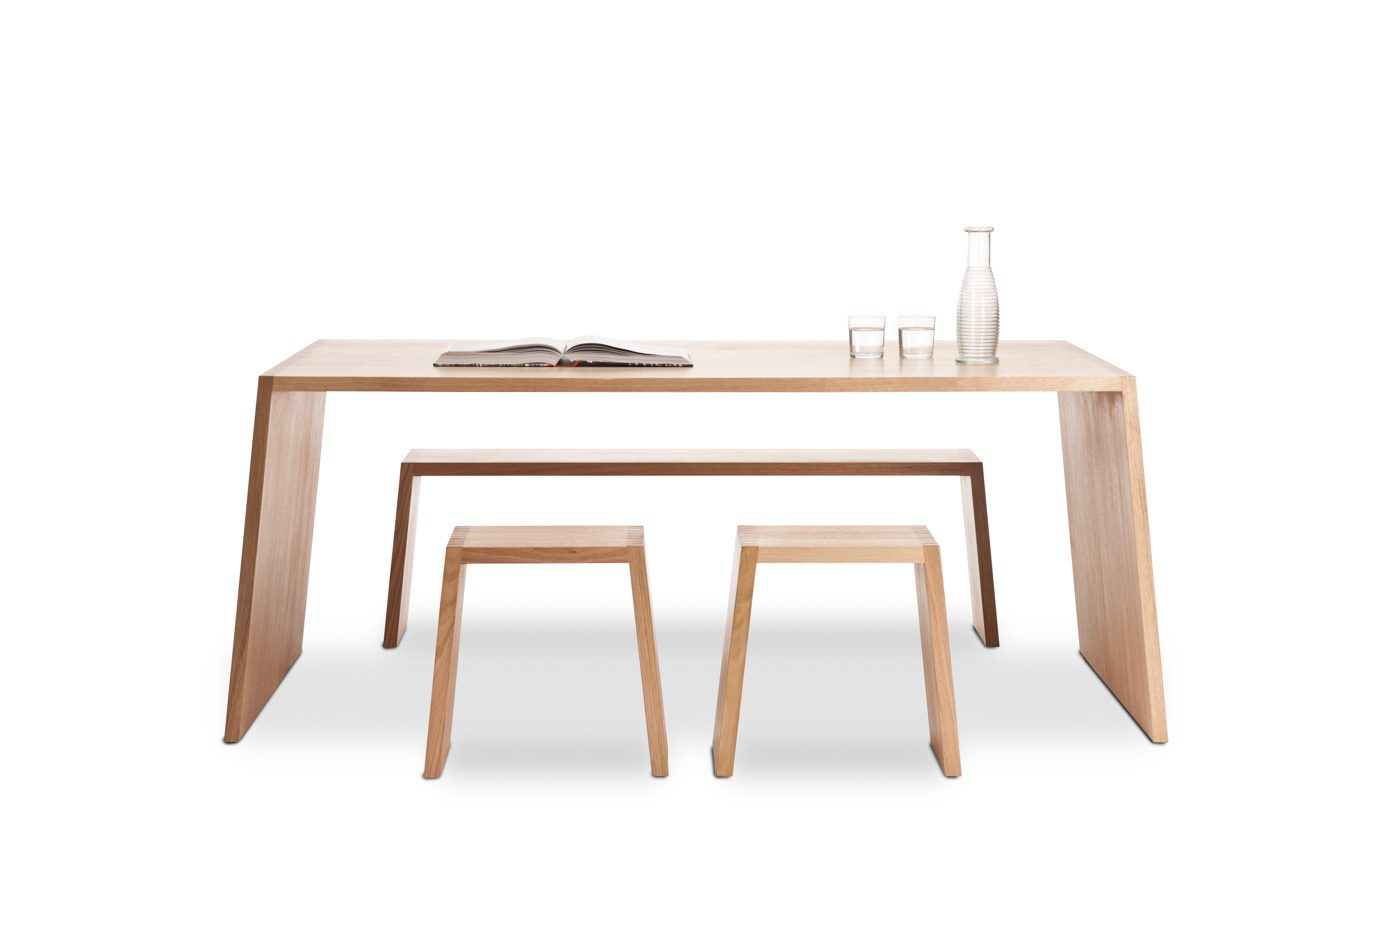 Product photography of timber table